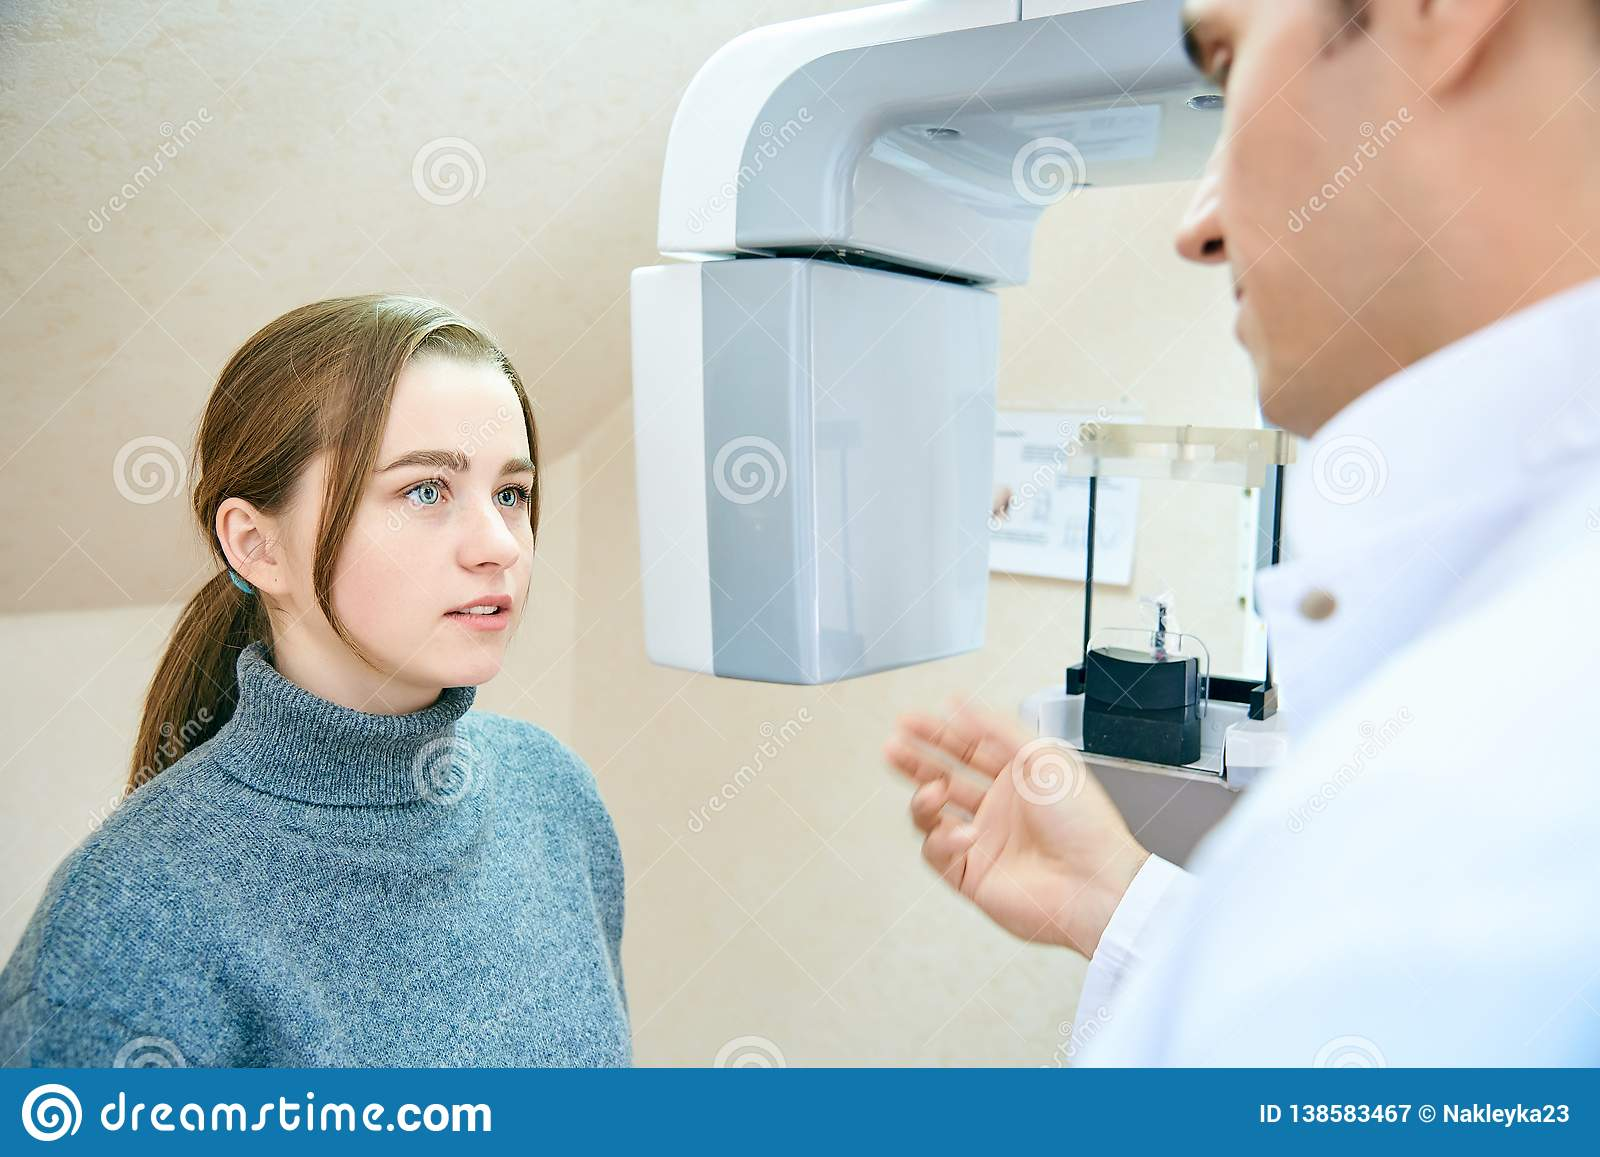 The doctor shows the patient an x-ray image